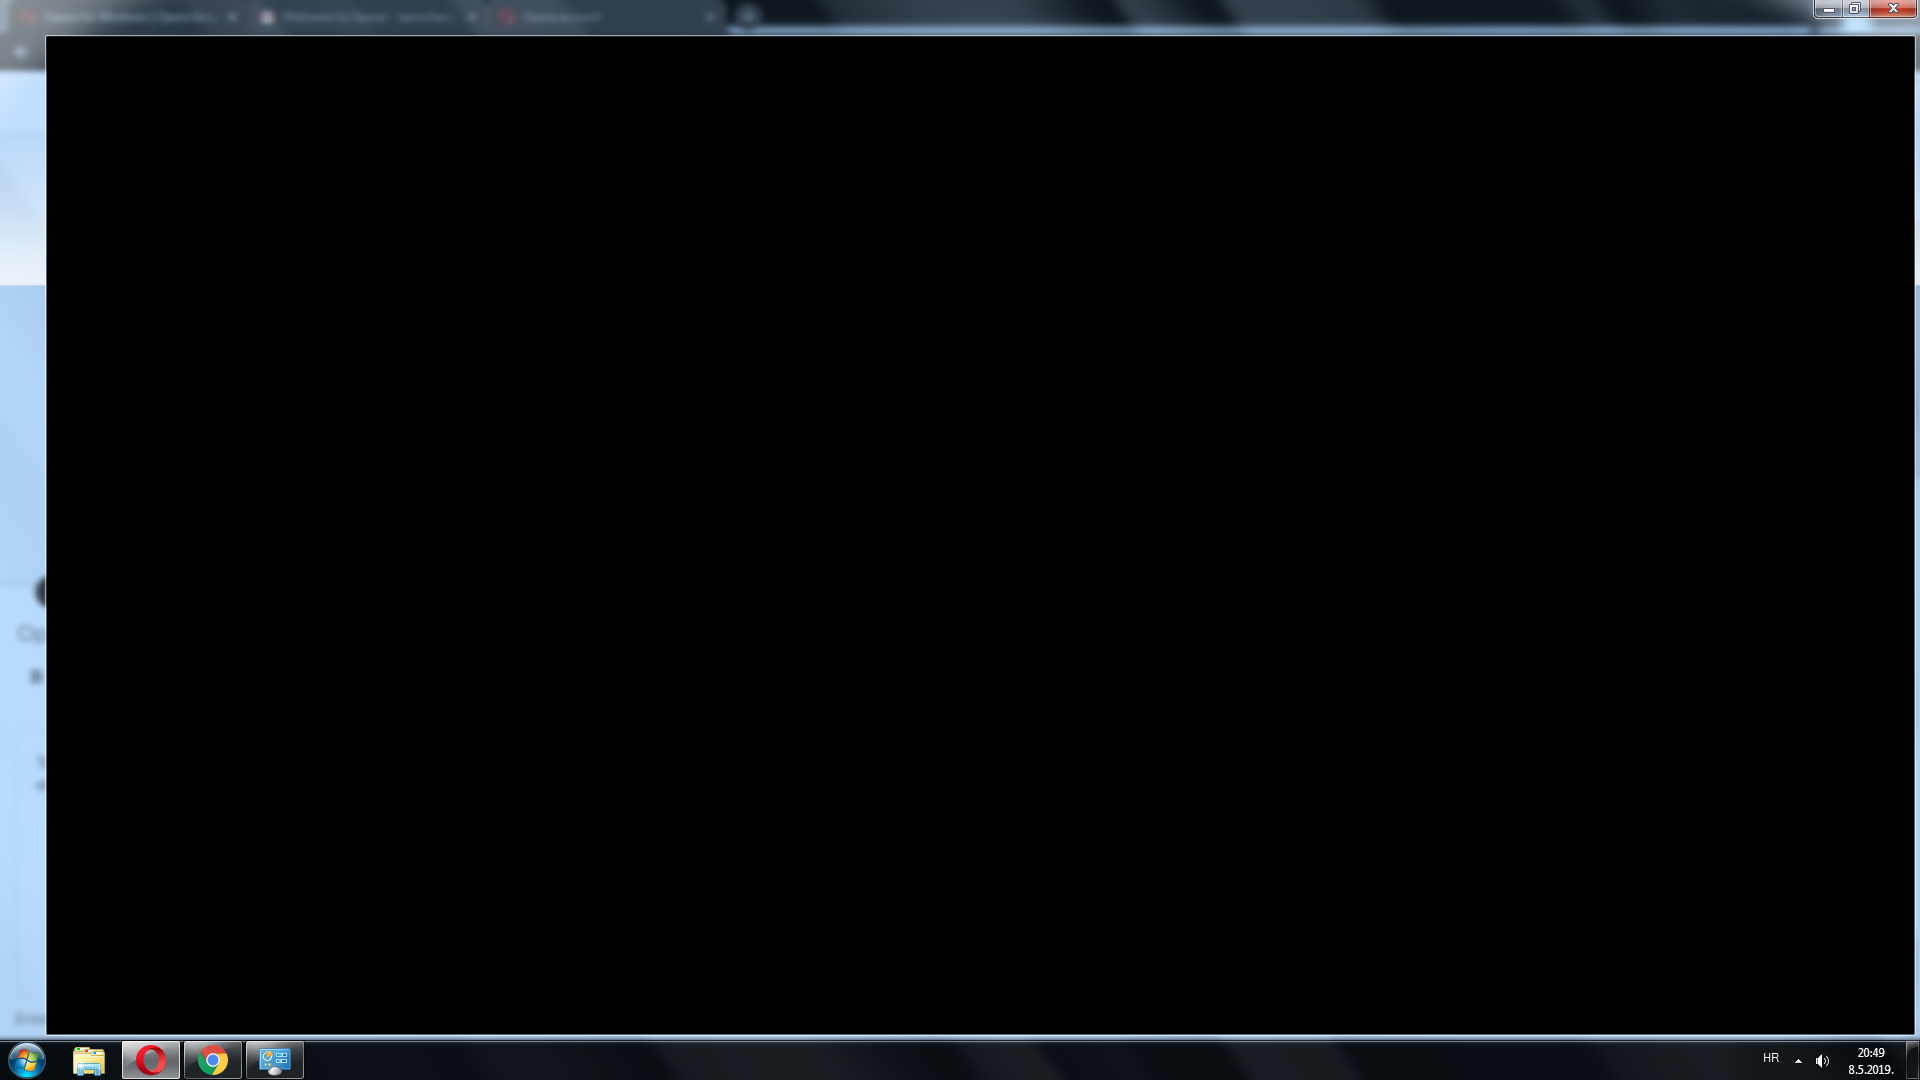 Solved]Black screen instead of browser after update.